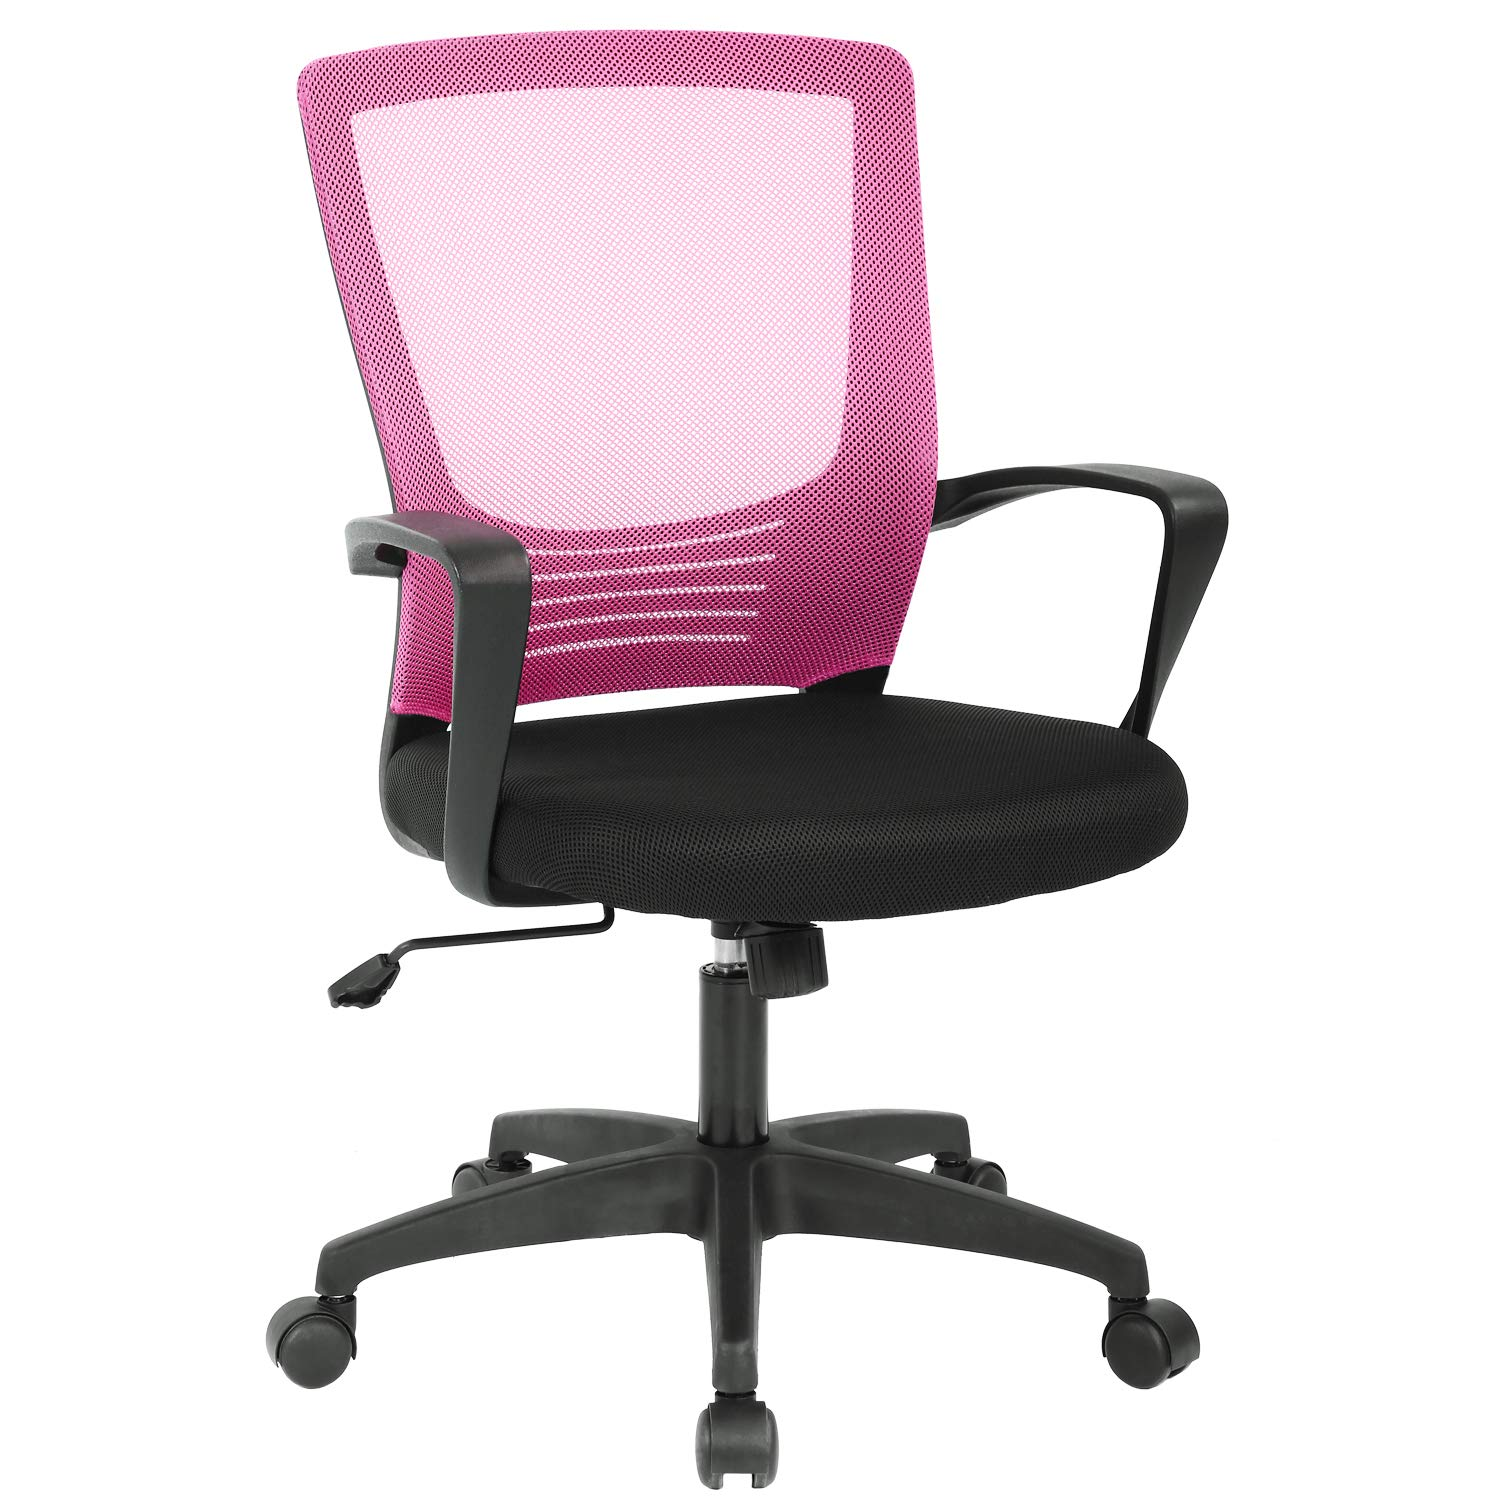 Office Chair Ergonomic Desk Chair Mesh Computer Chair Rolling Swivel Modern Executive Chair Adjustable Stool Back Support for Women&Men, Pink